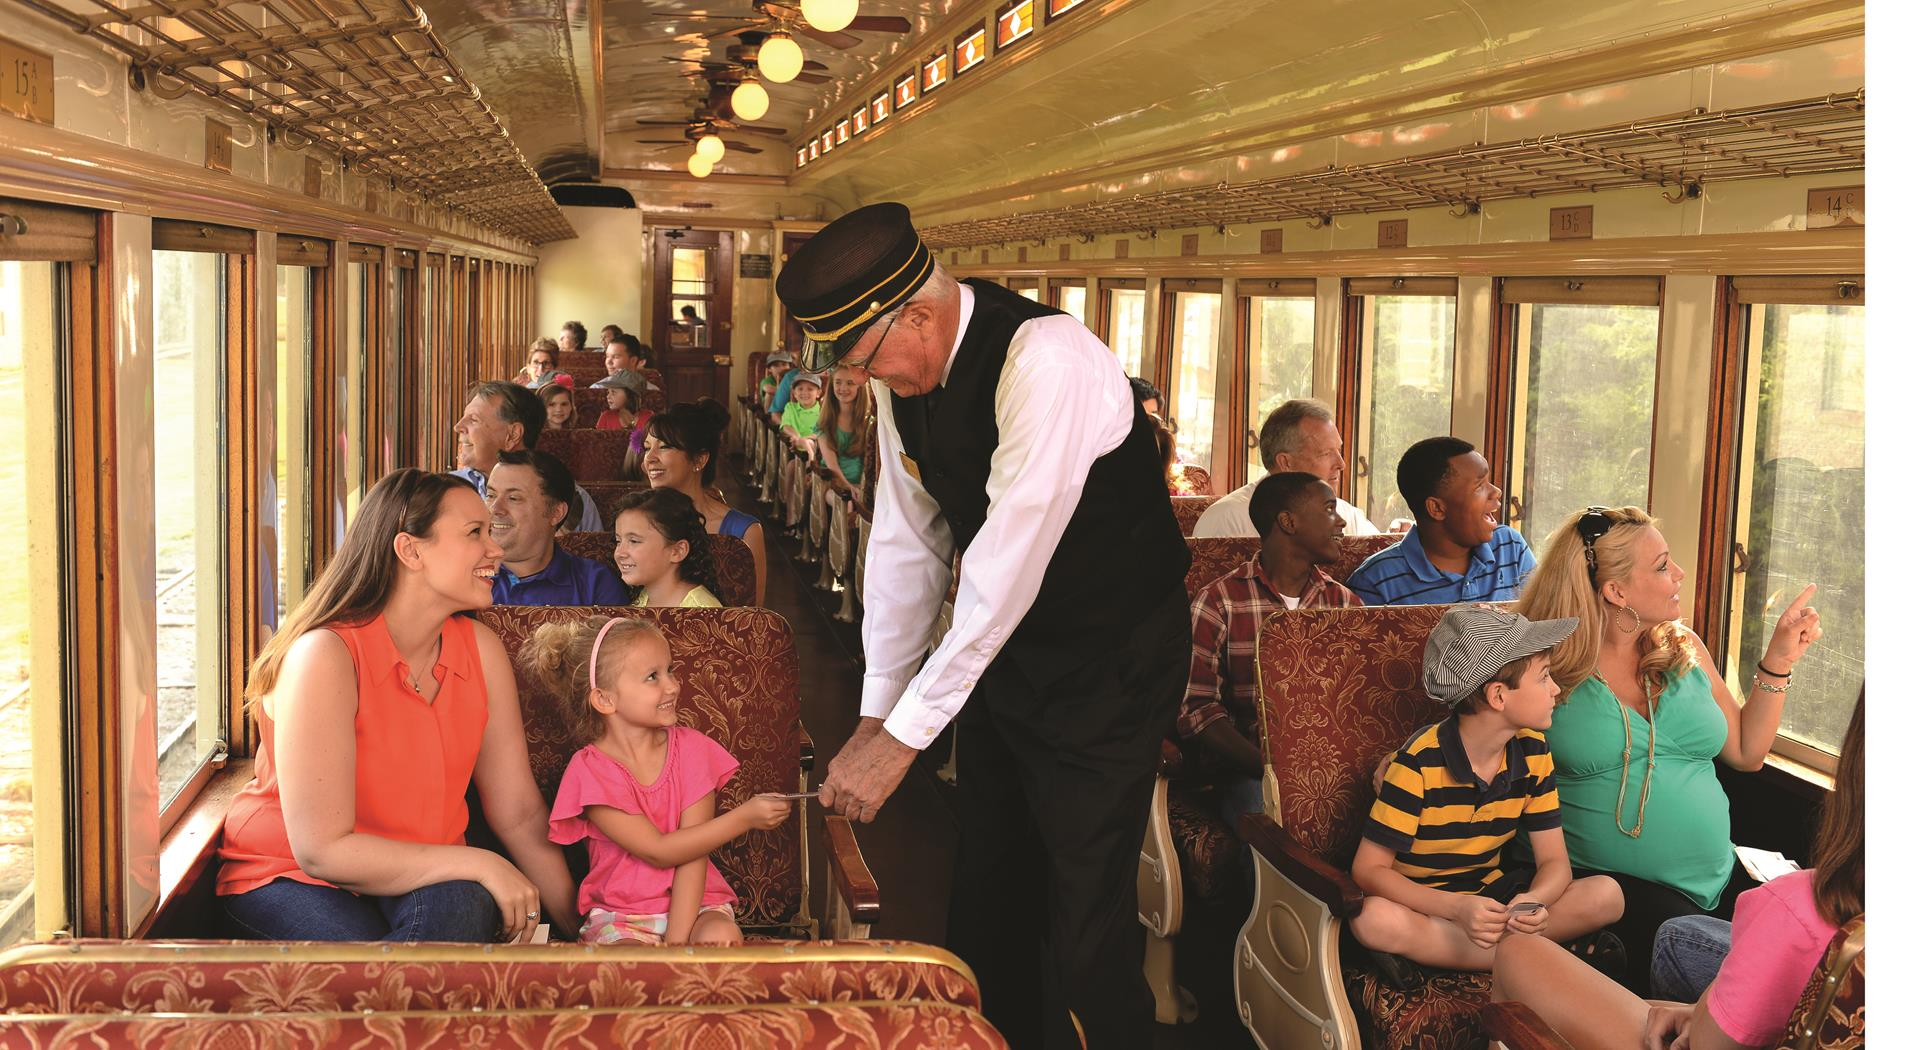 Take a train ride and explore all Grapevine has to offer.